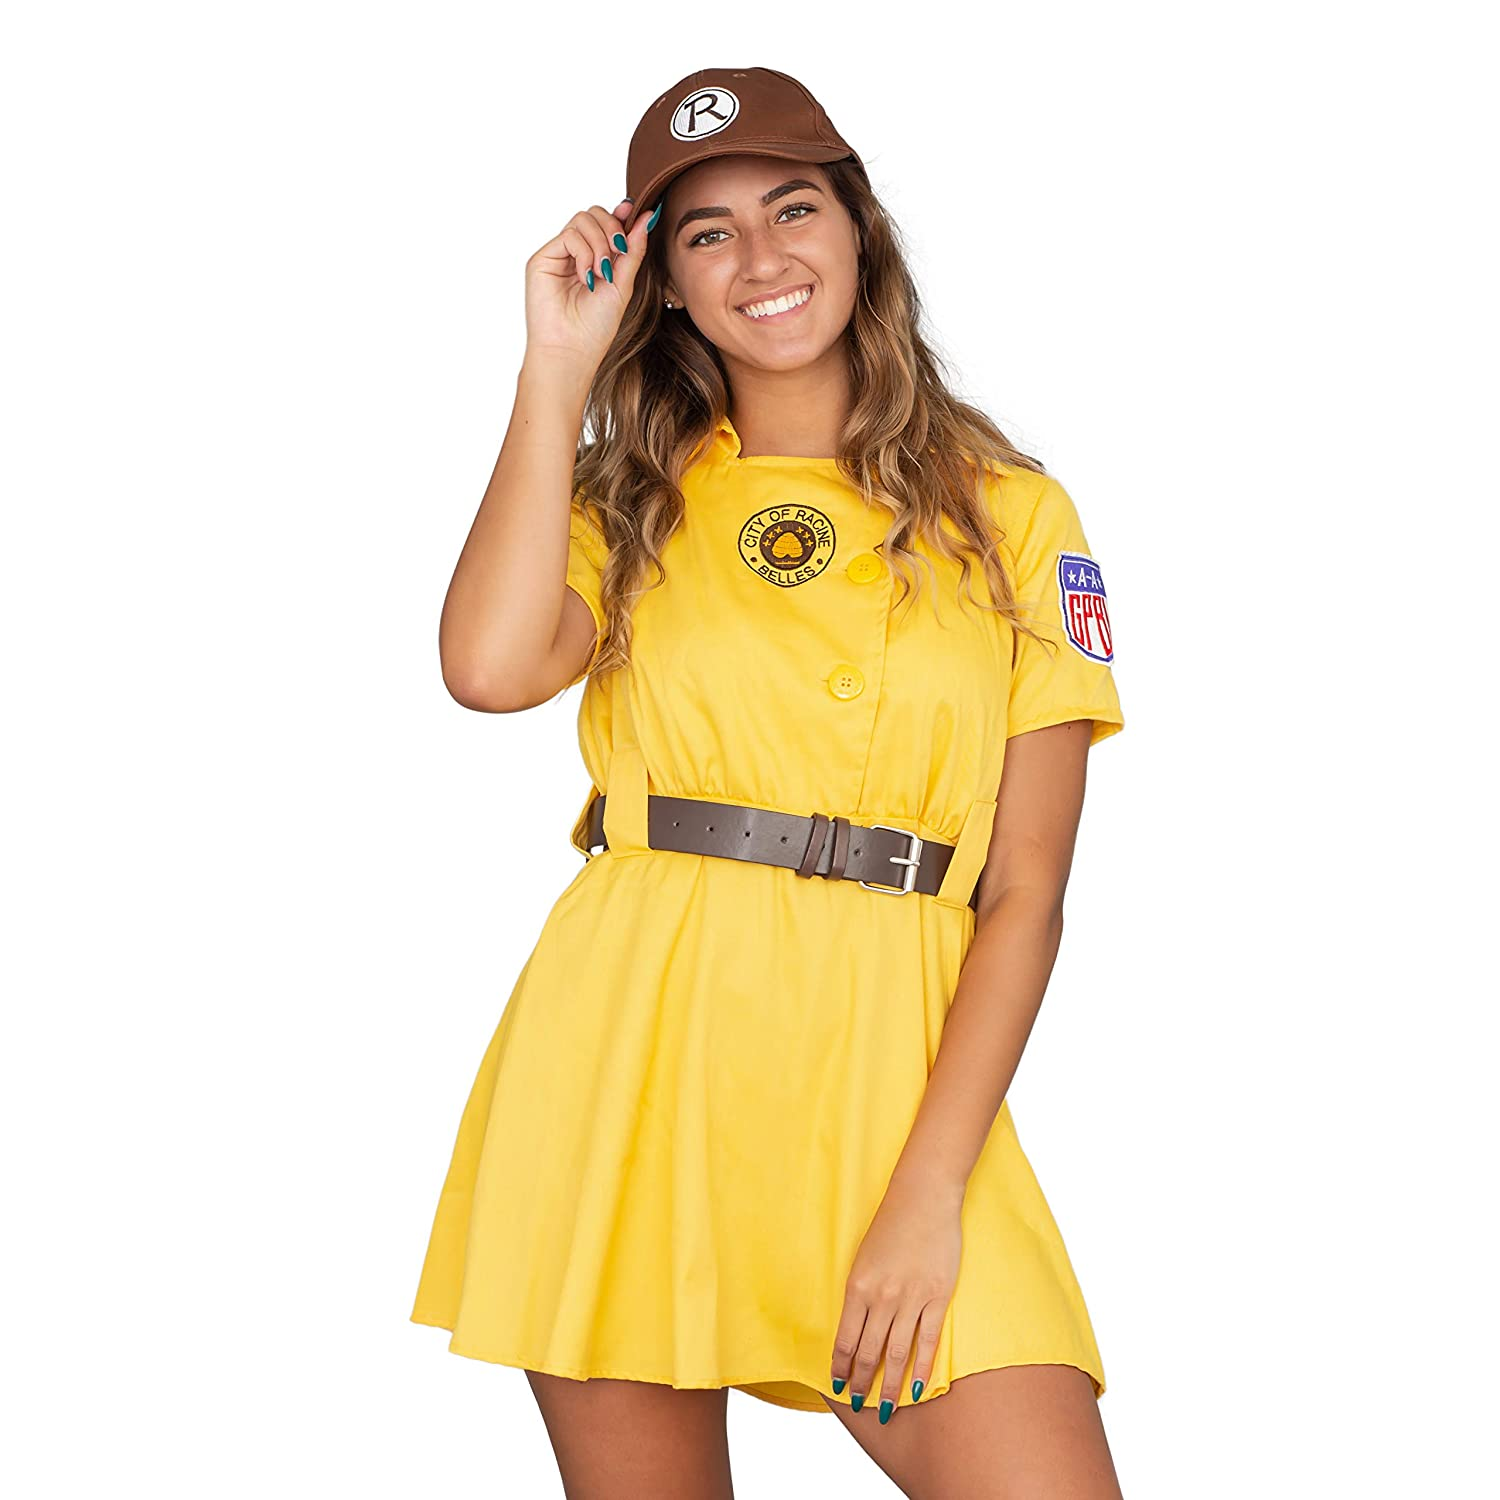 1940s Costume & Outfit Ideas – 16 Women's Looks Racine Belles AAGPBL Baseball Womens Costume Dress $49.99 AT vintagedancer.com